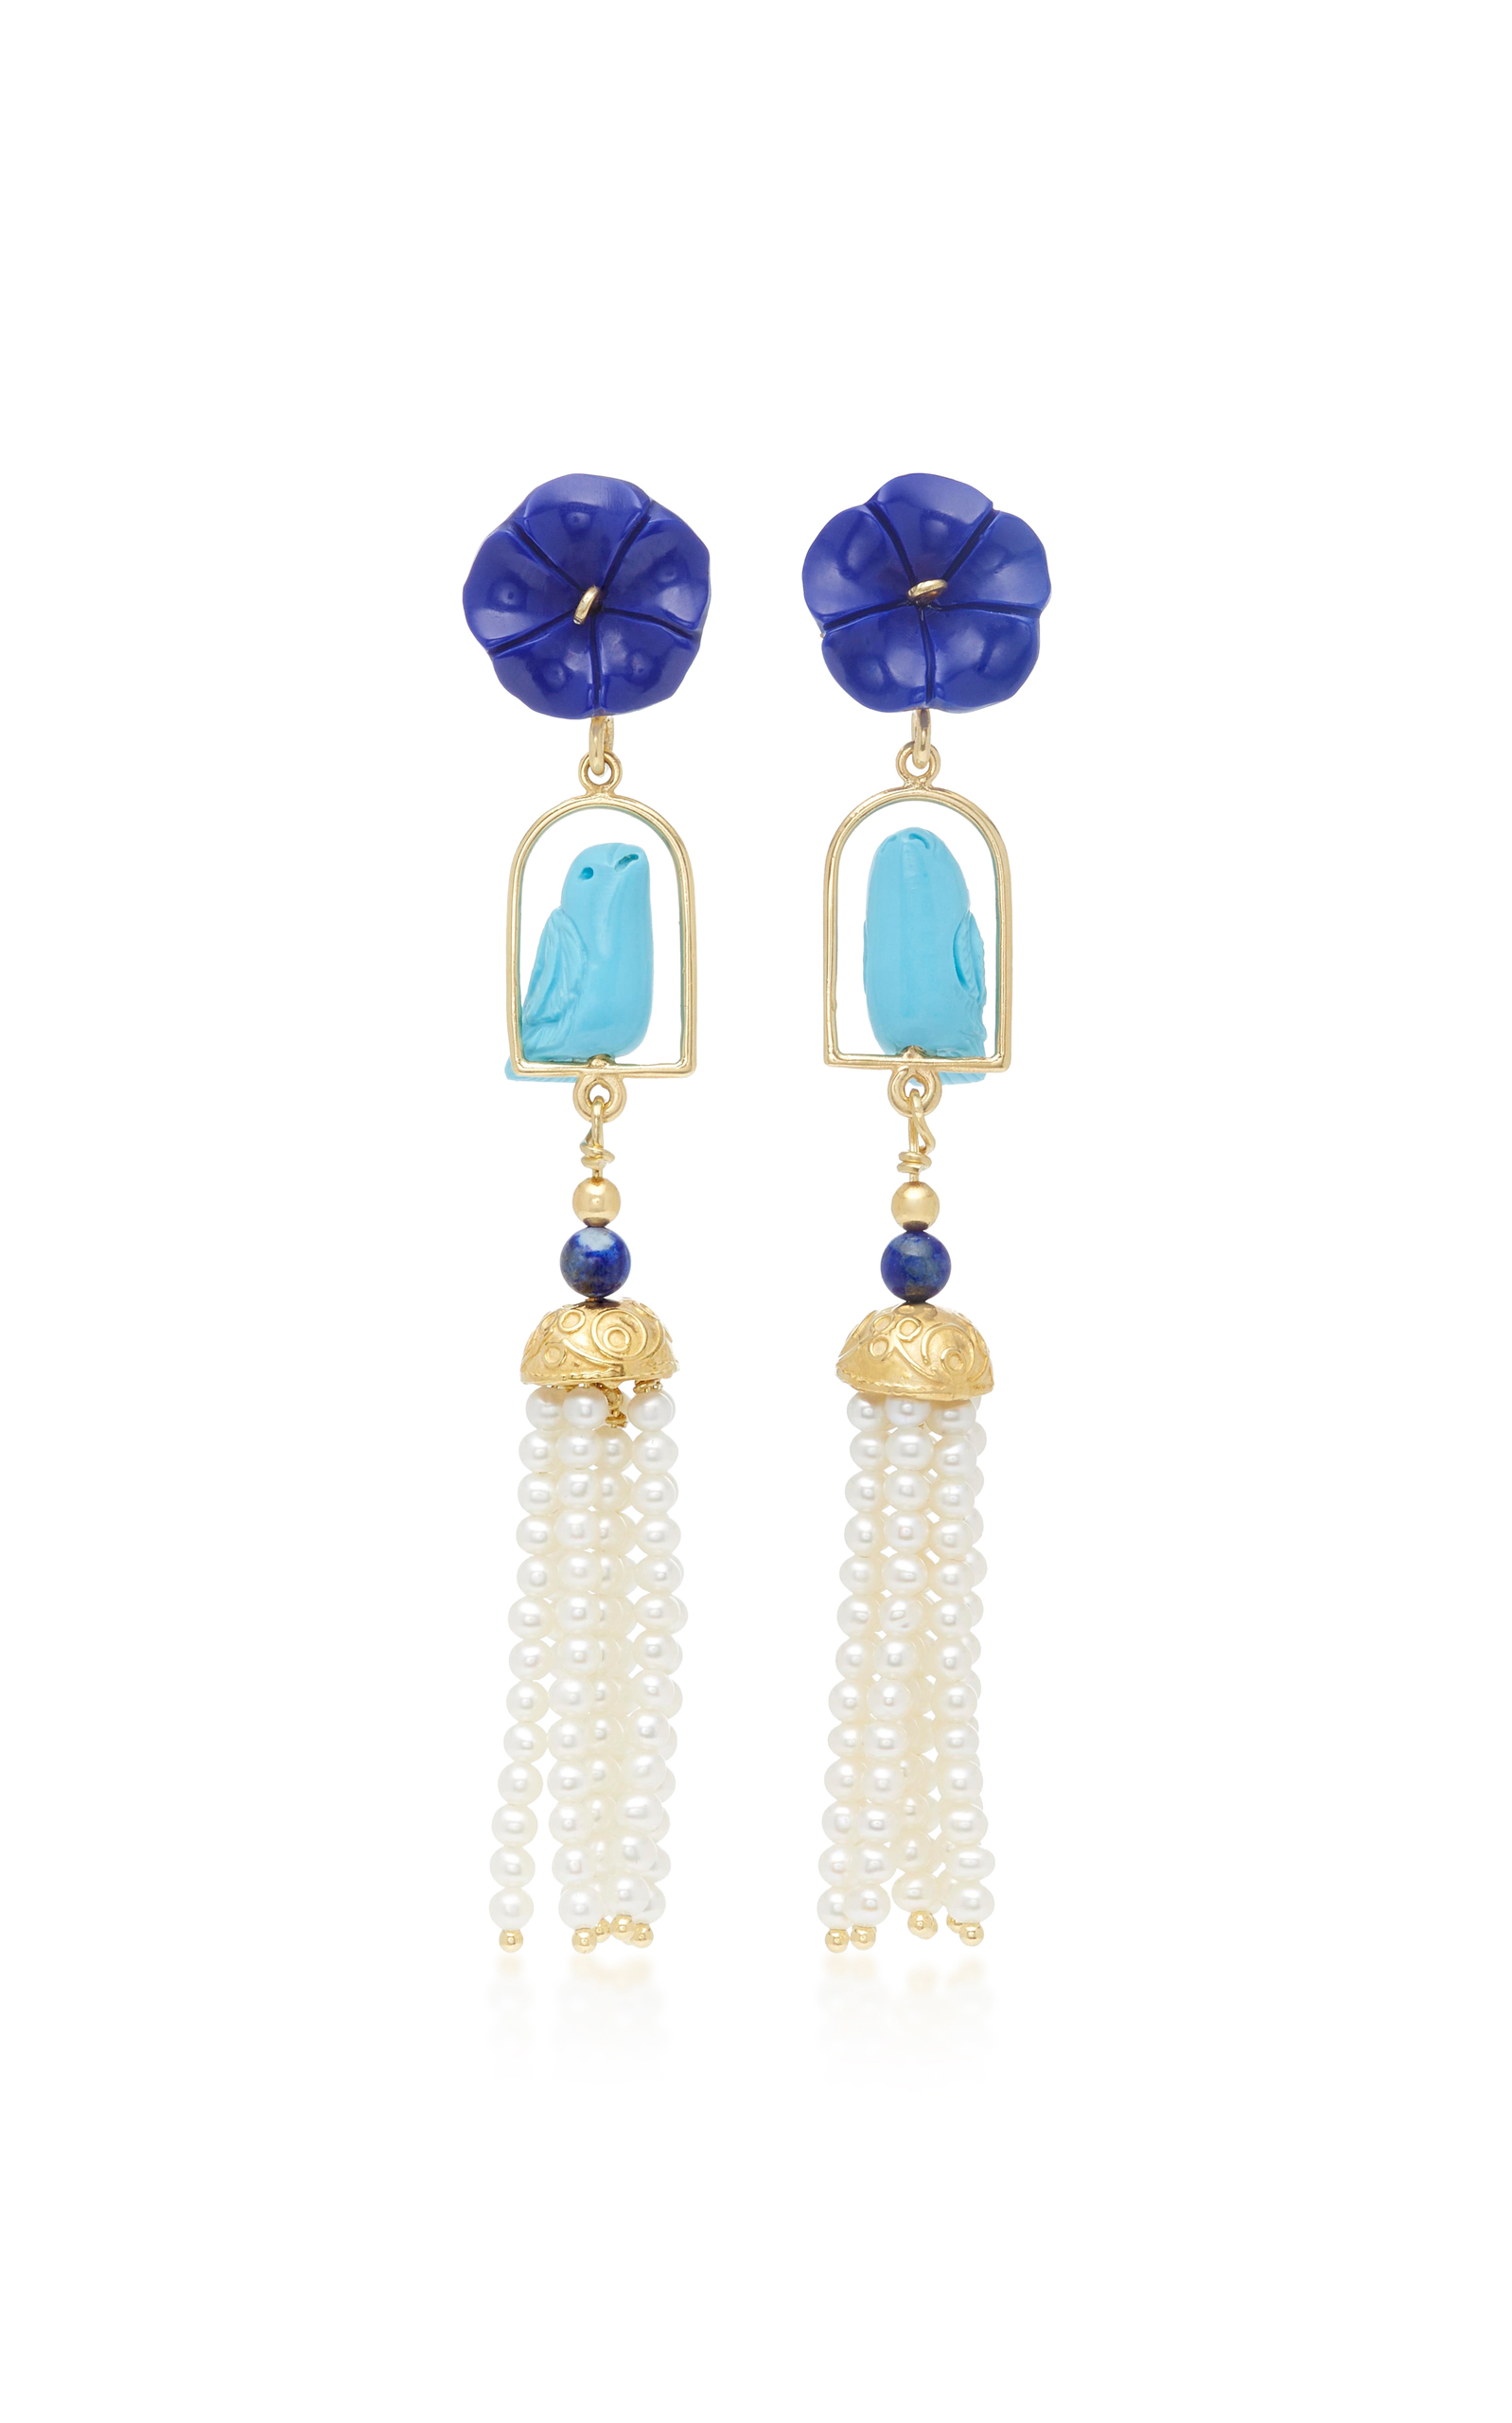 OF RARE ORIGIN SWINGERS 18K YELLOW GOLD VERMEIL LAPIS TURQUOISE AND PEARL EARRINGS